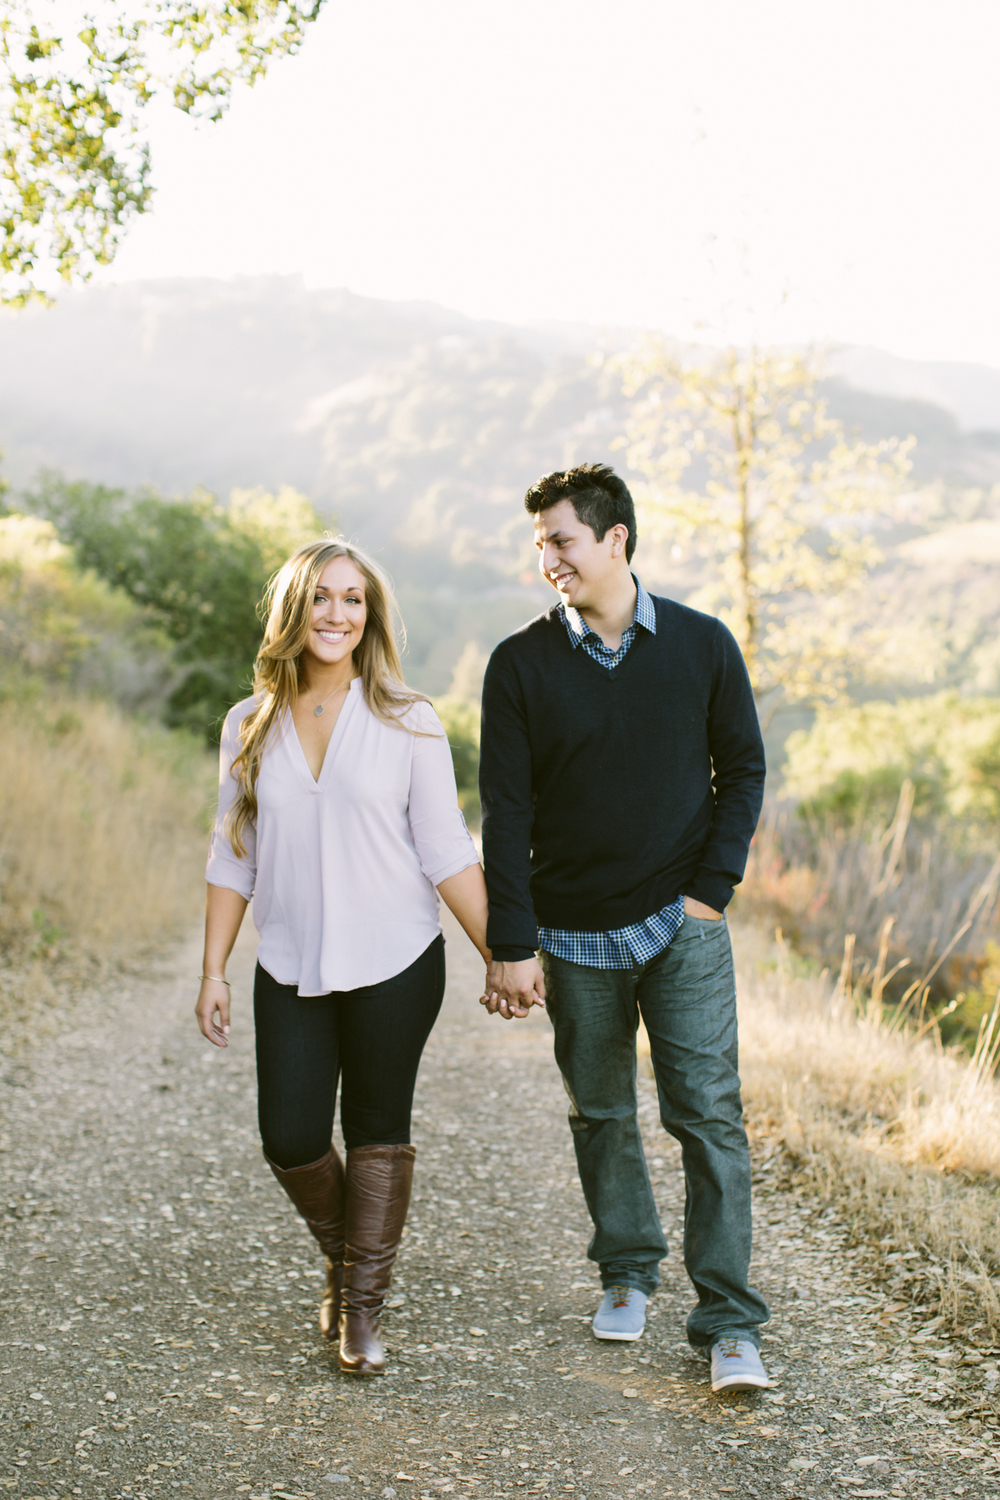 michaela_ed_engagement-109.jpg